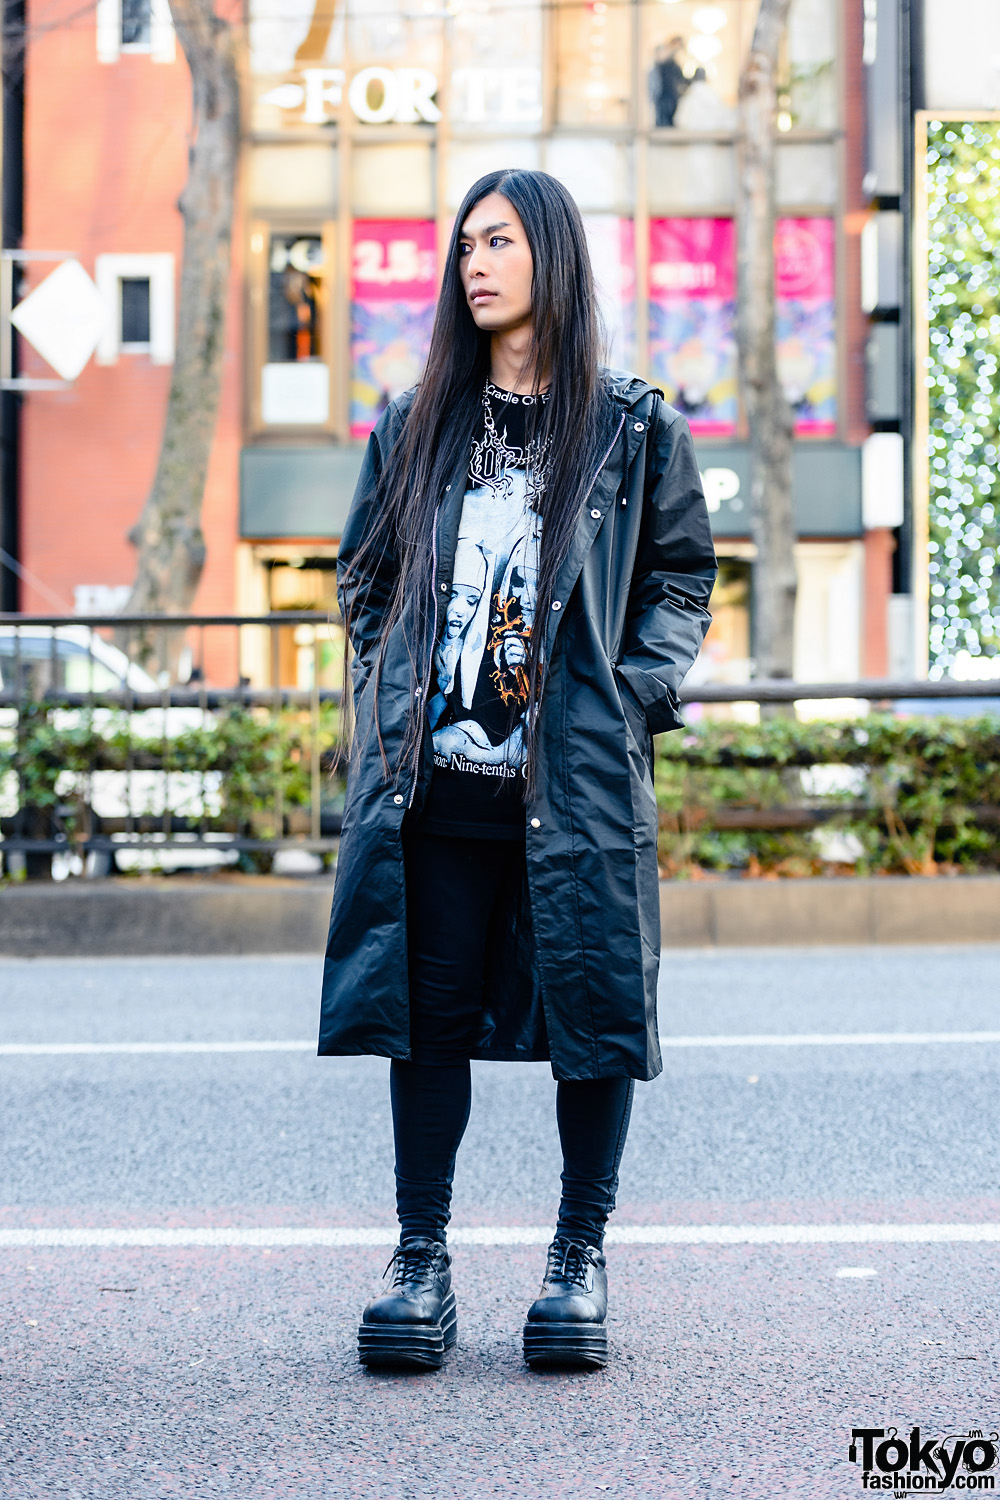 All Black Tokyo Streetwear Style w/ Long Hair, Purple Contacts, Hooded Coat, Cradle of Filth Band Tee, Tripp NYC Skinny Jeans, Nike & Demonia Platform Shoes